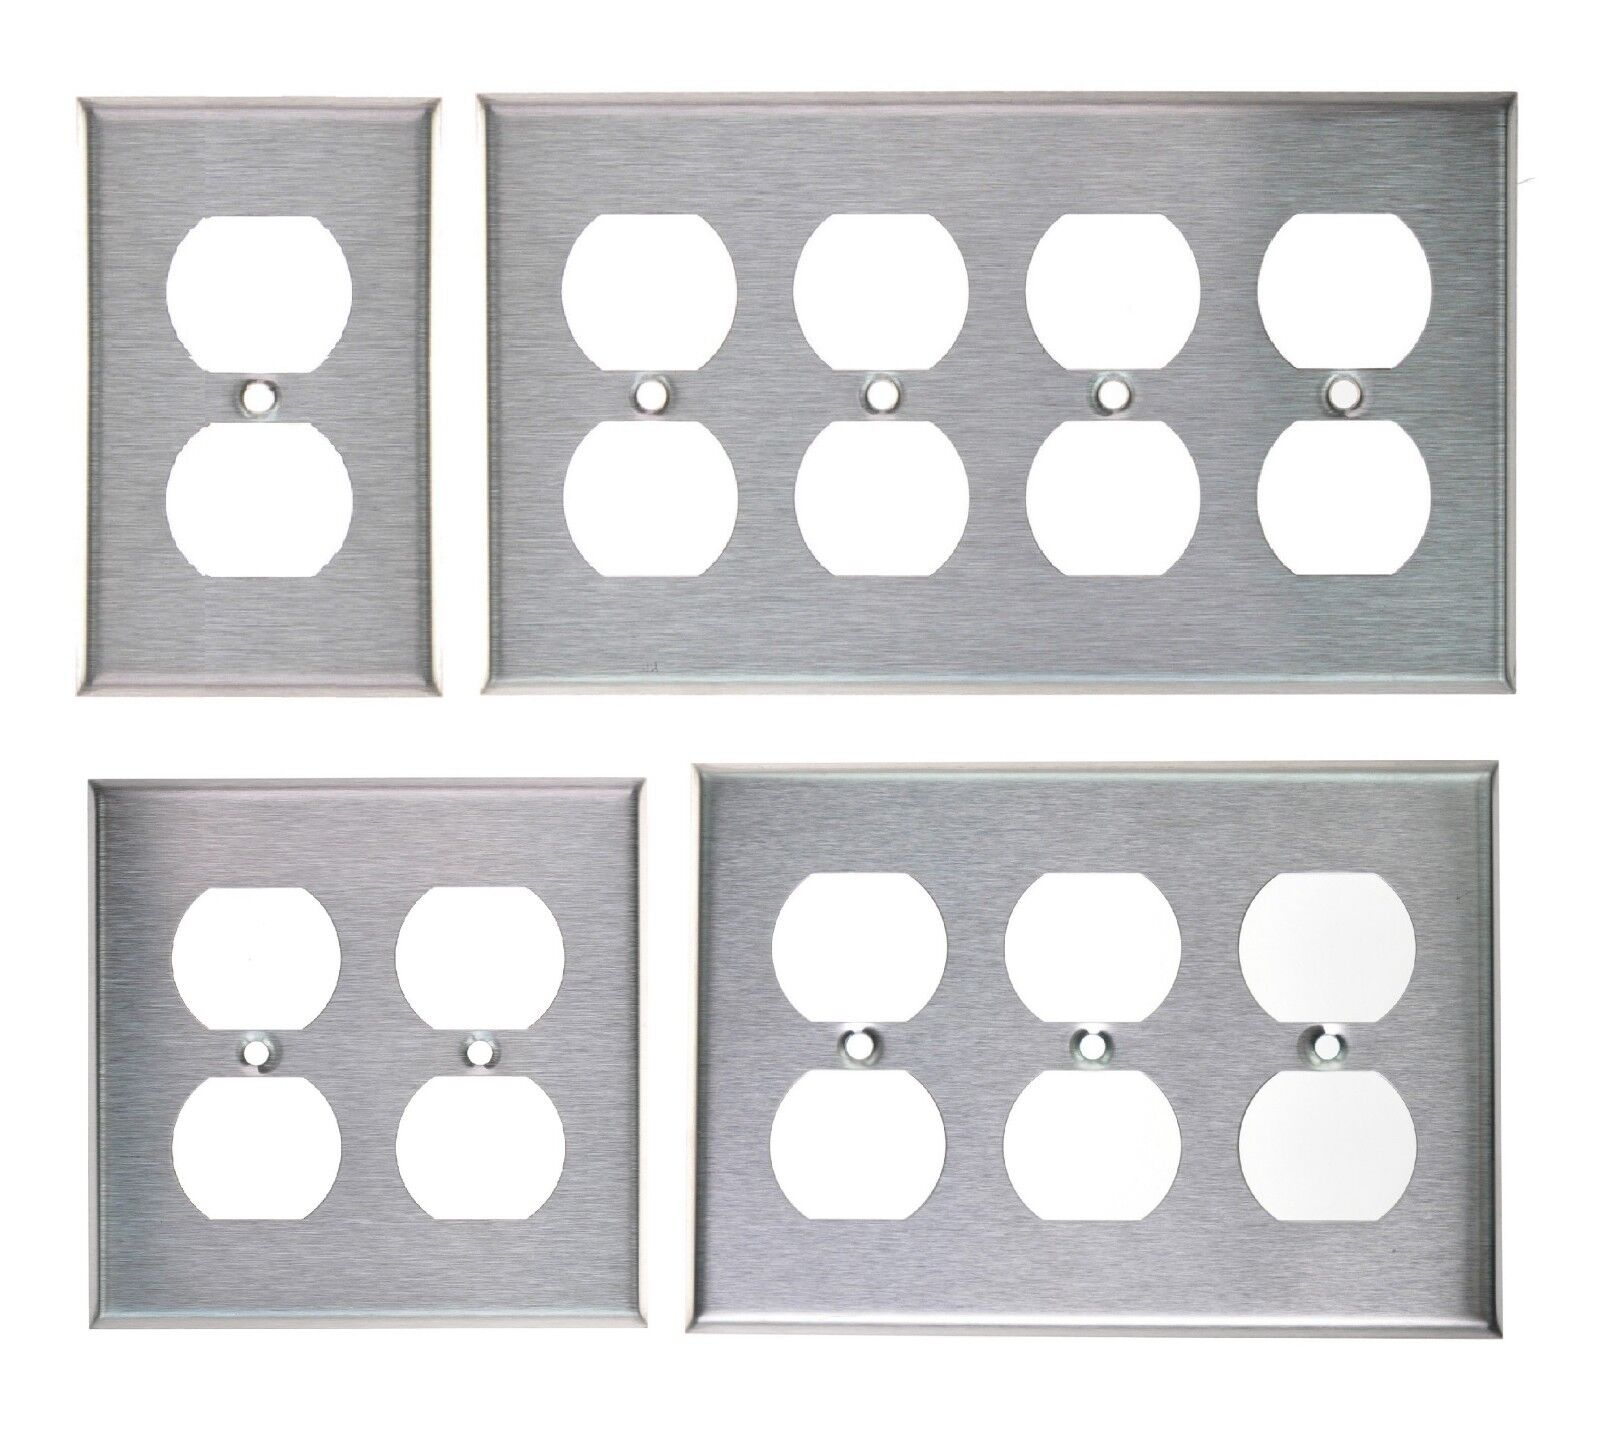 Купить DUPLEX PLUG OUTLET STAINLESS STEEL COVER PLATE 1 2 3 4 GANG